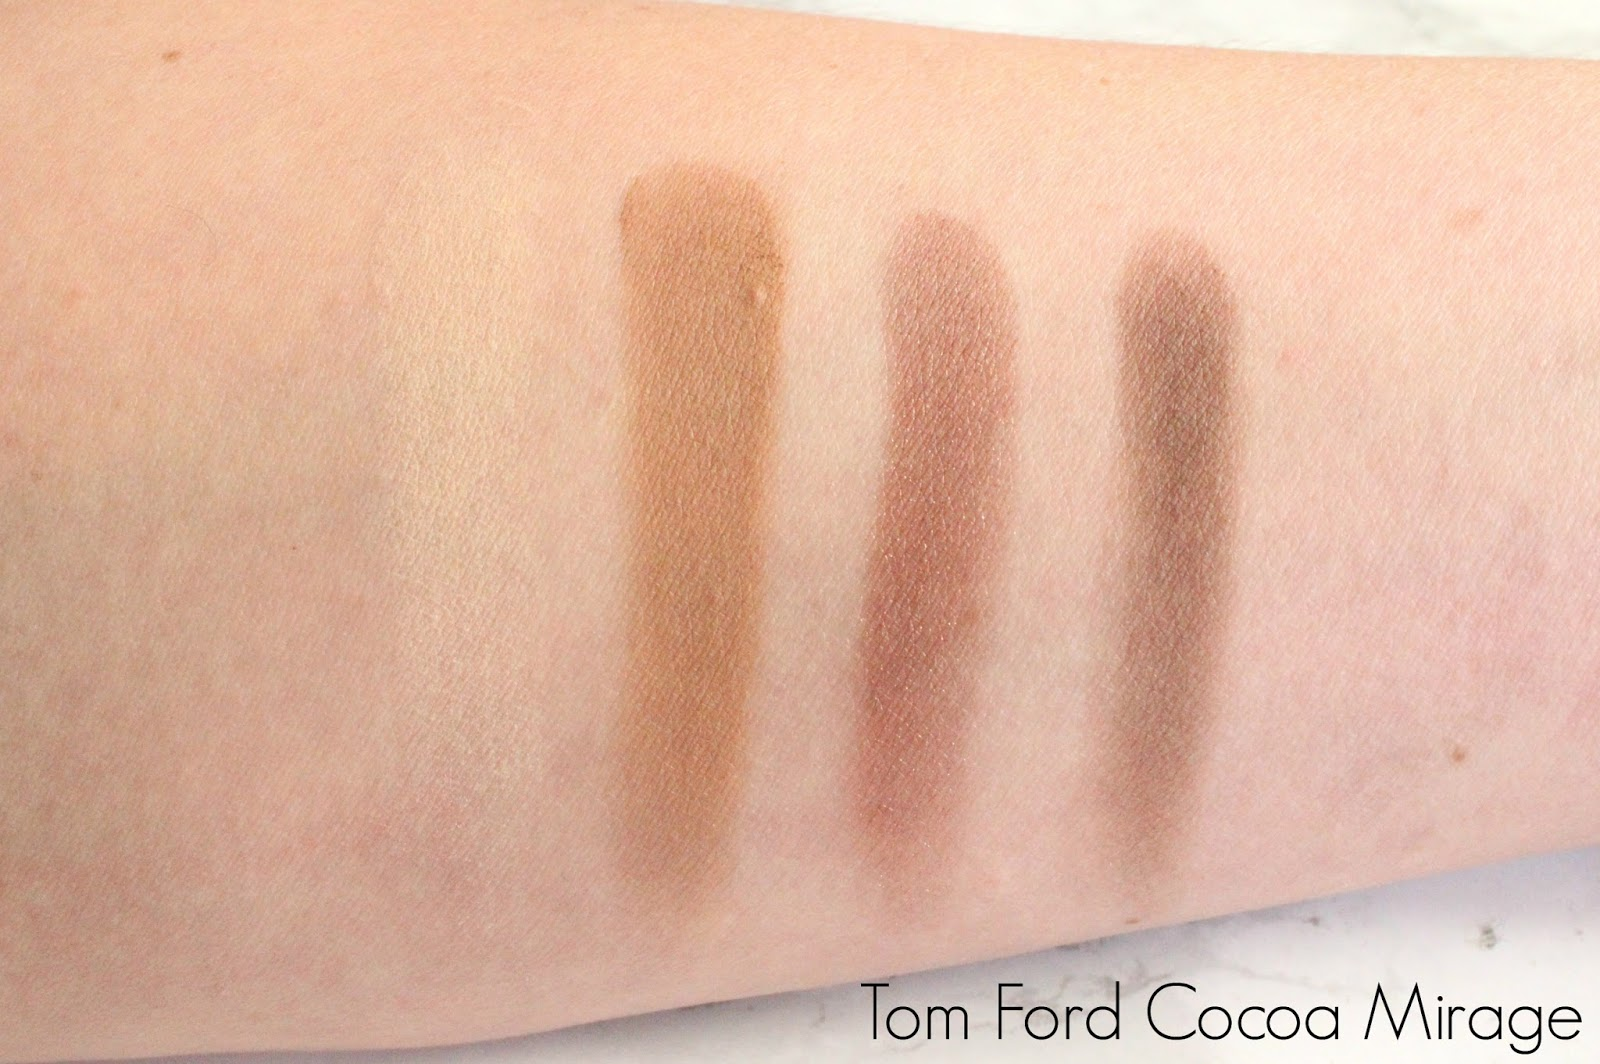 Tom Ford Eyeshadow Quad in Cocoa Mirage Swatch